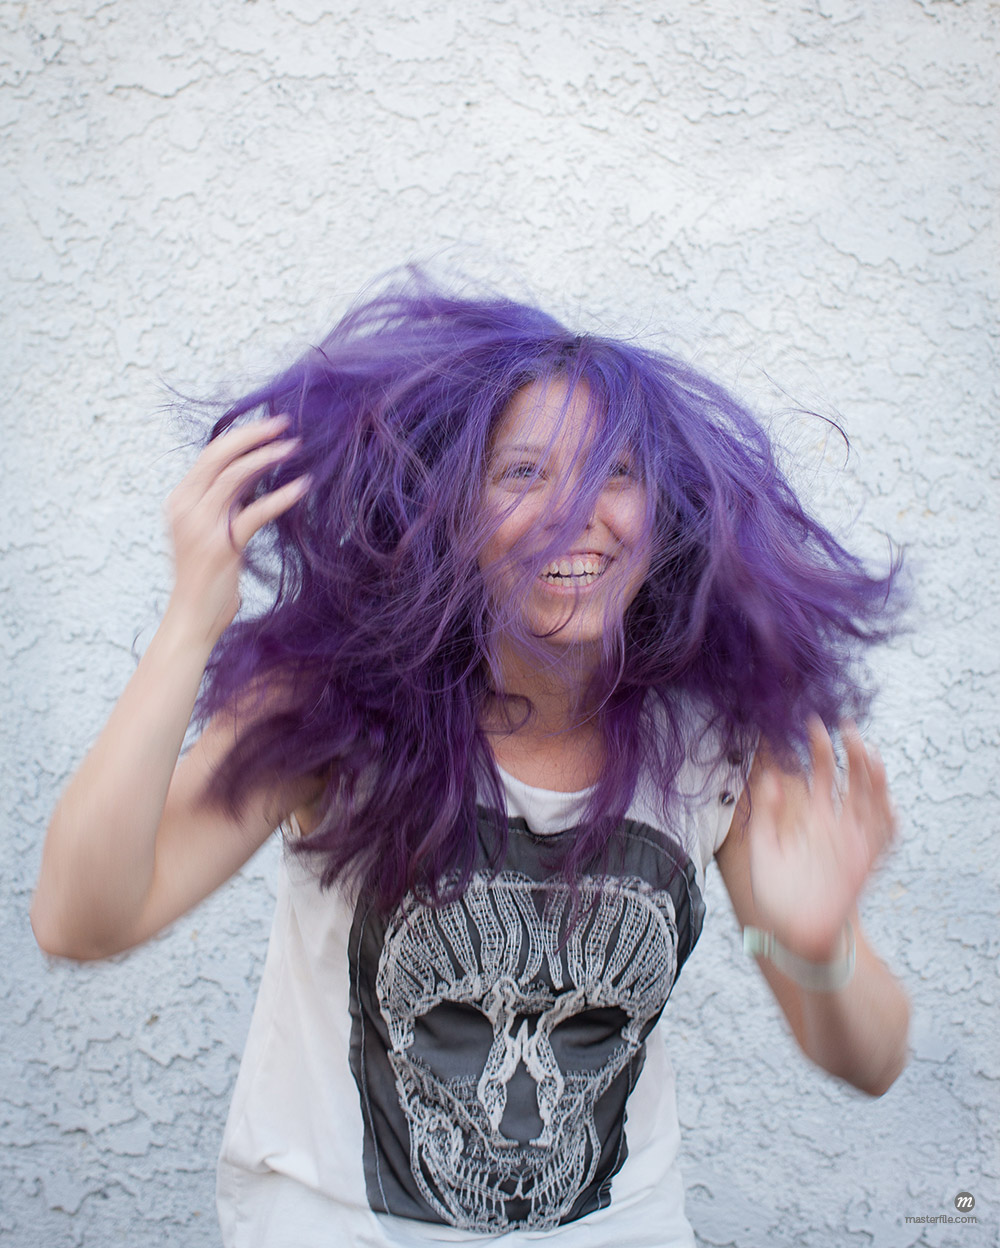 Young woman wearing purple wig © Masterfile